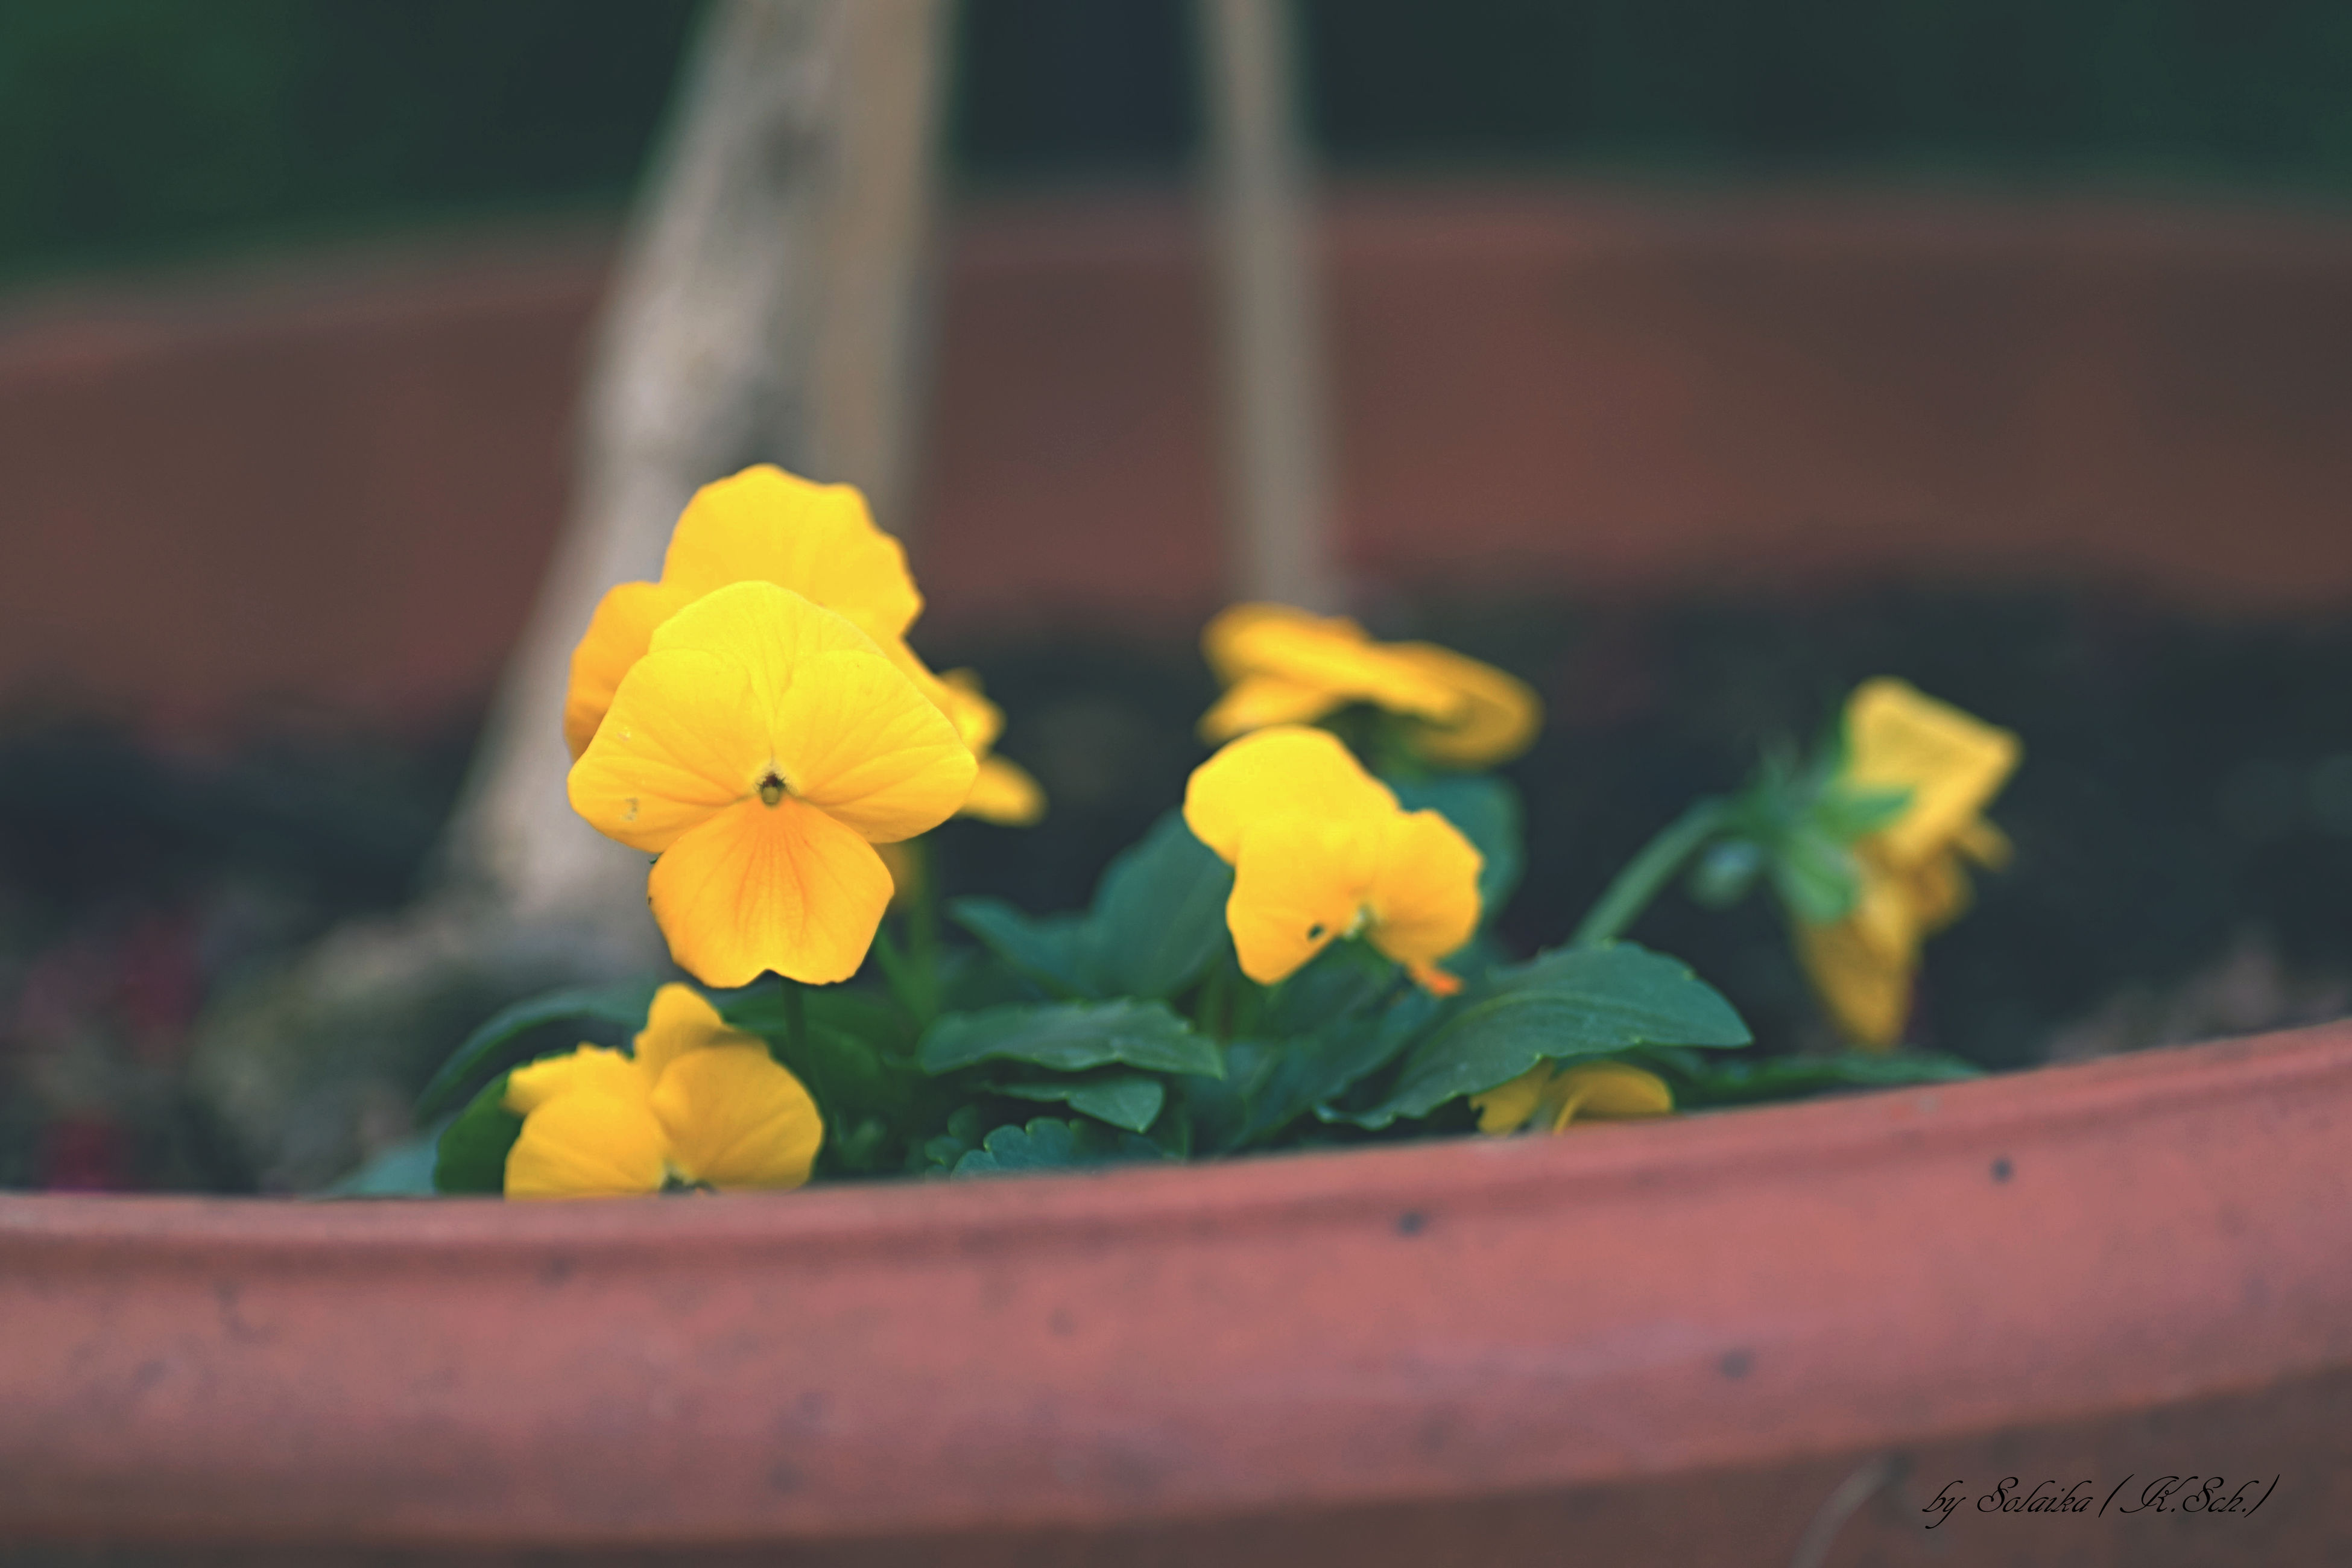 flower, yellow, petal, fragility, freshness, focus on foreground, flower head, beauty in nature, close-up, growth, blooming, nature, plant, selective focus, day, in bloom, outdoors, botany, stem, park - man made space